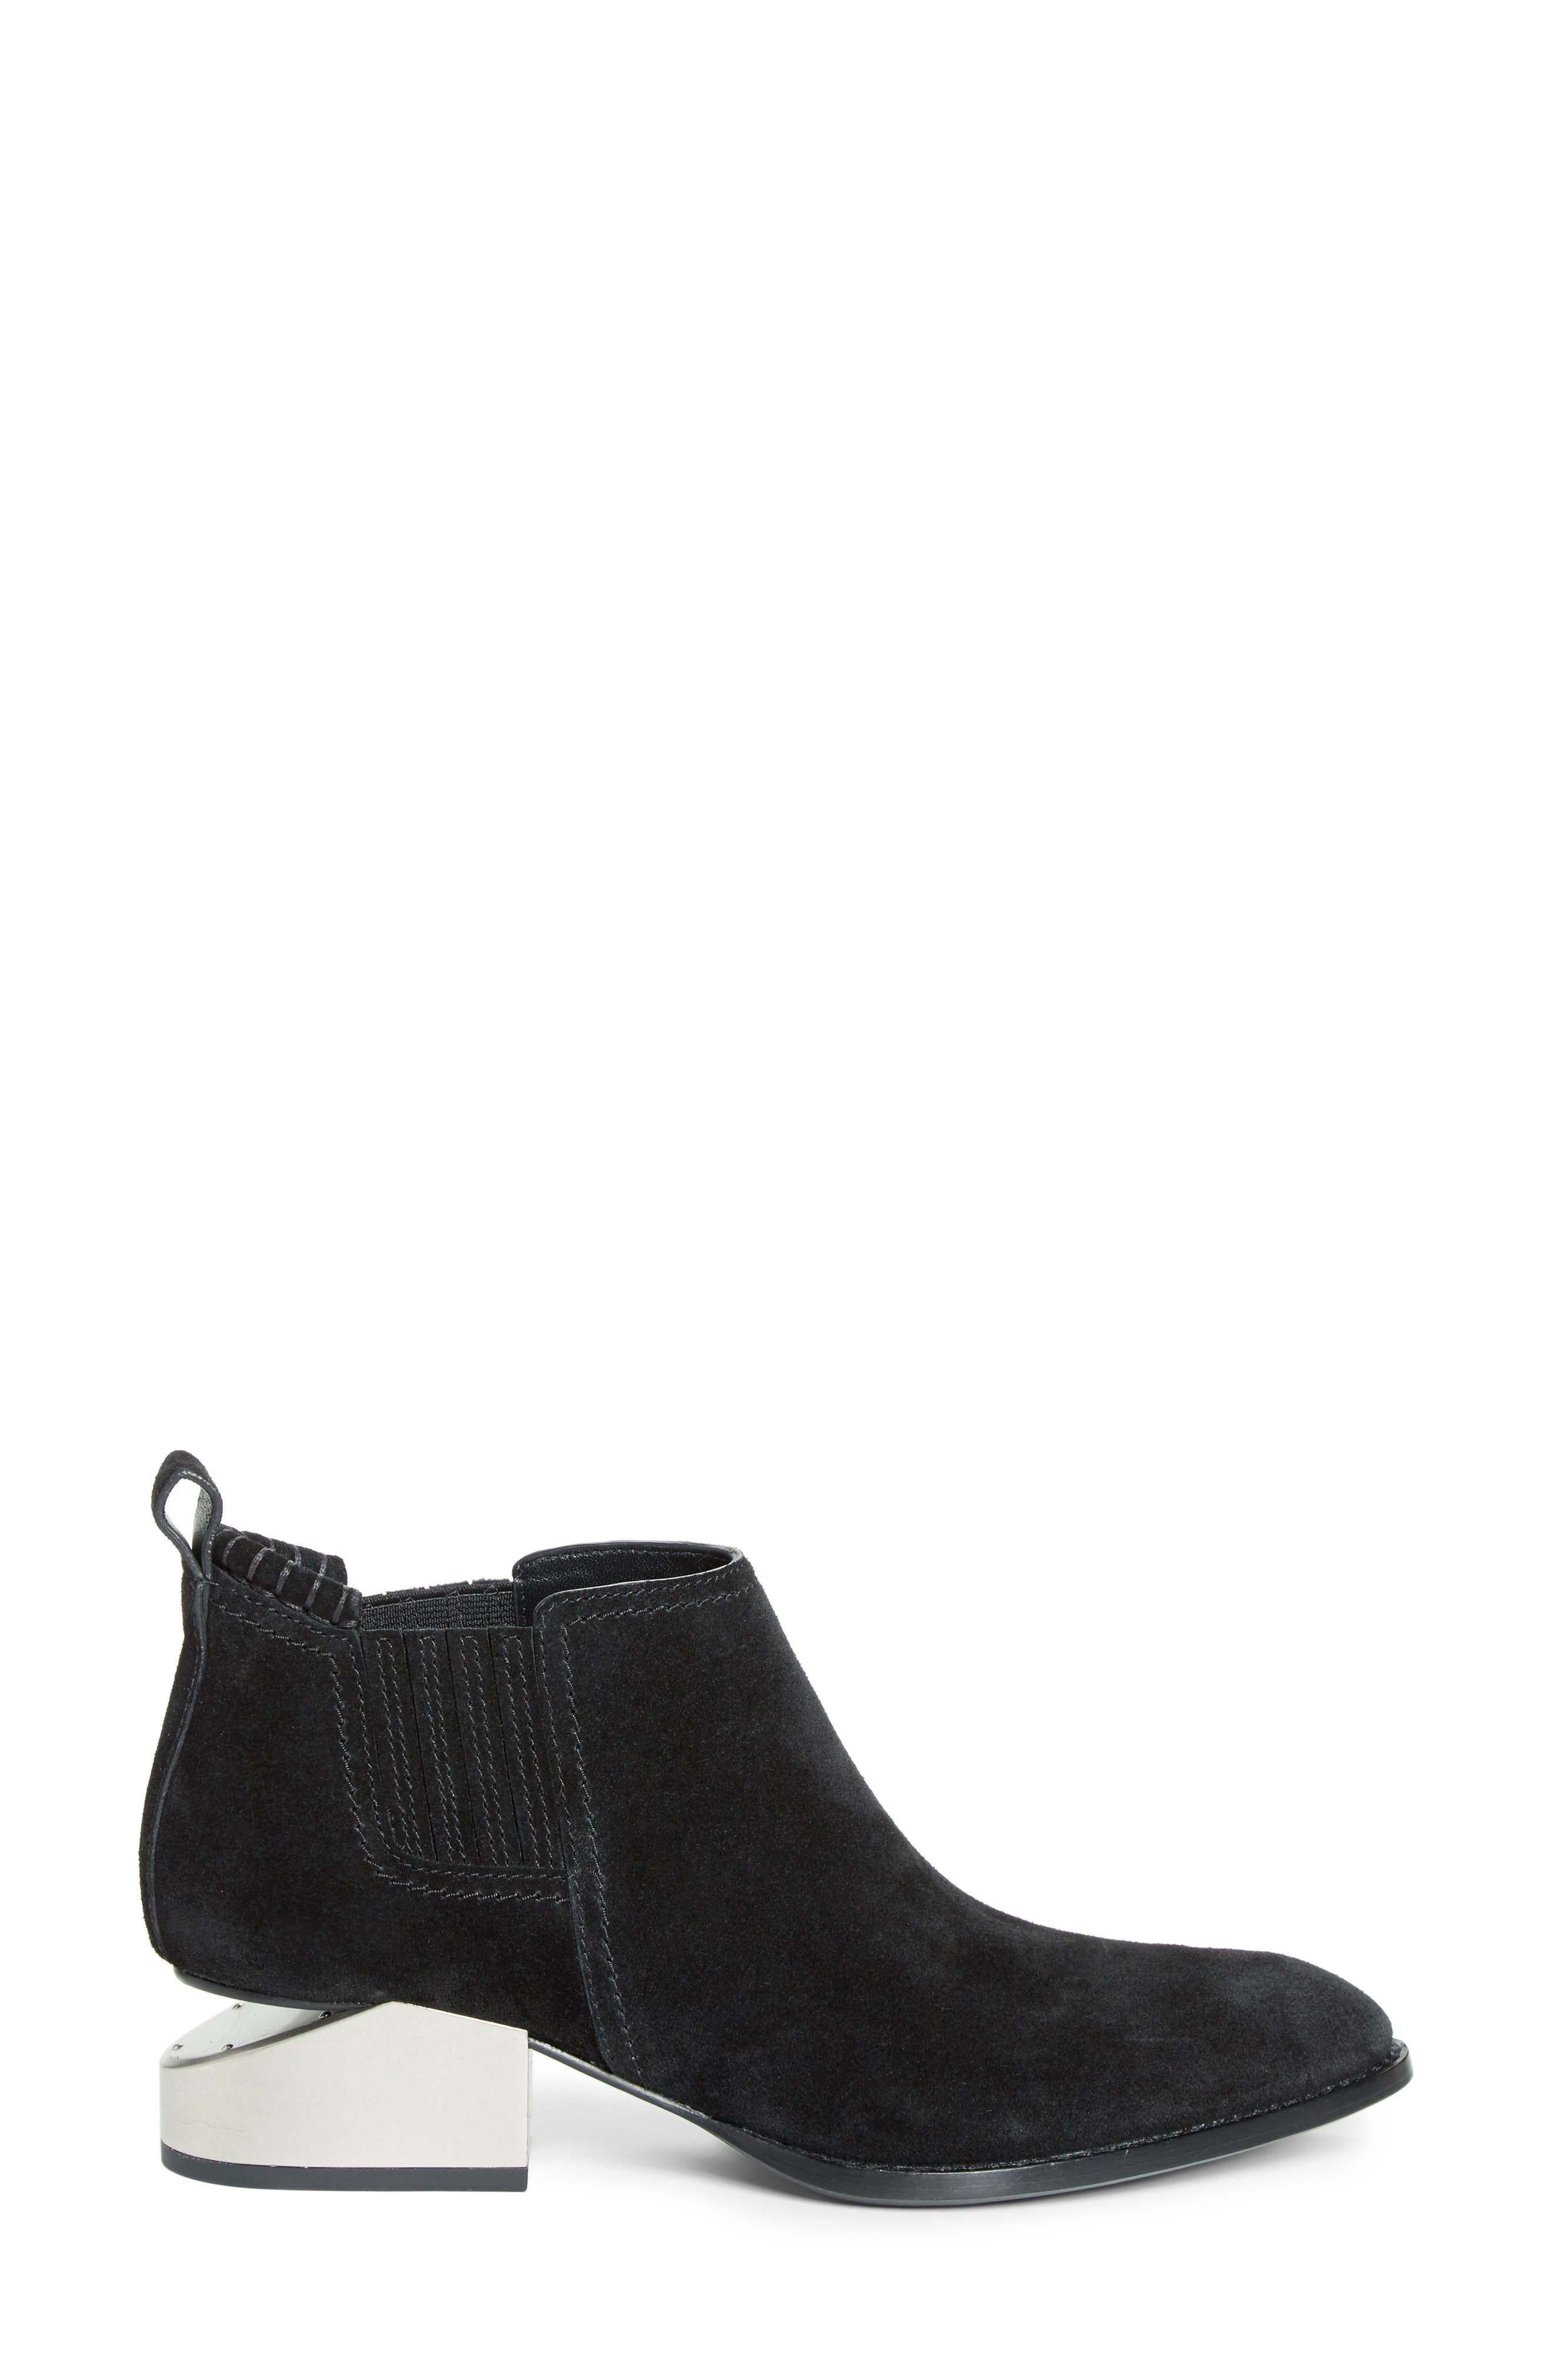 Kori Chelsea Boot,                             Alternate thumbnail 3, color,                             001